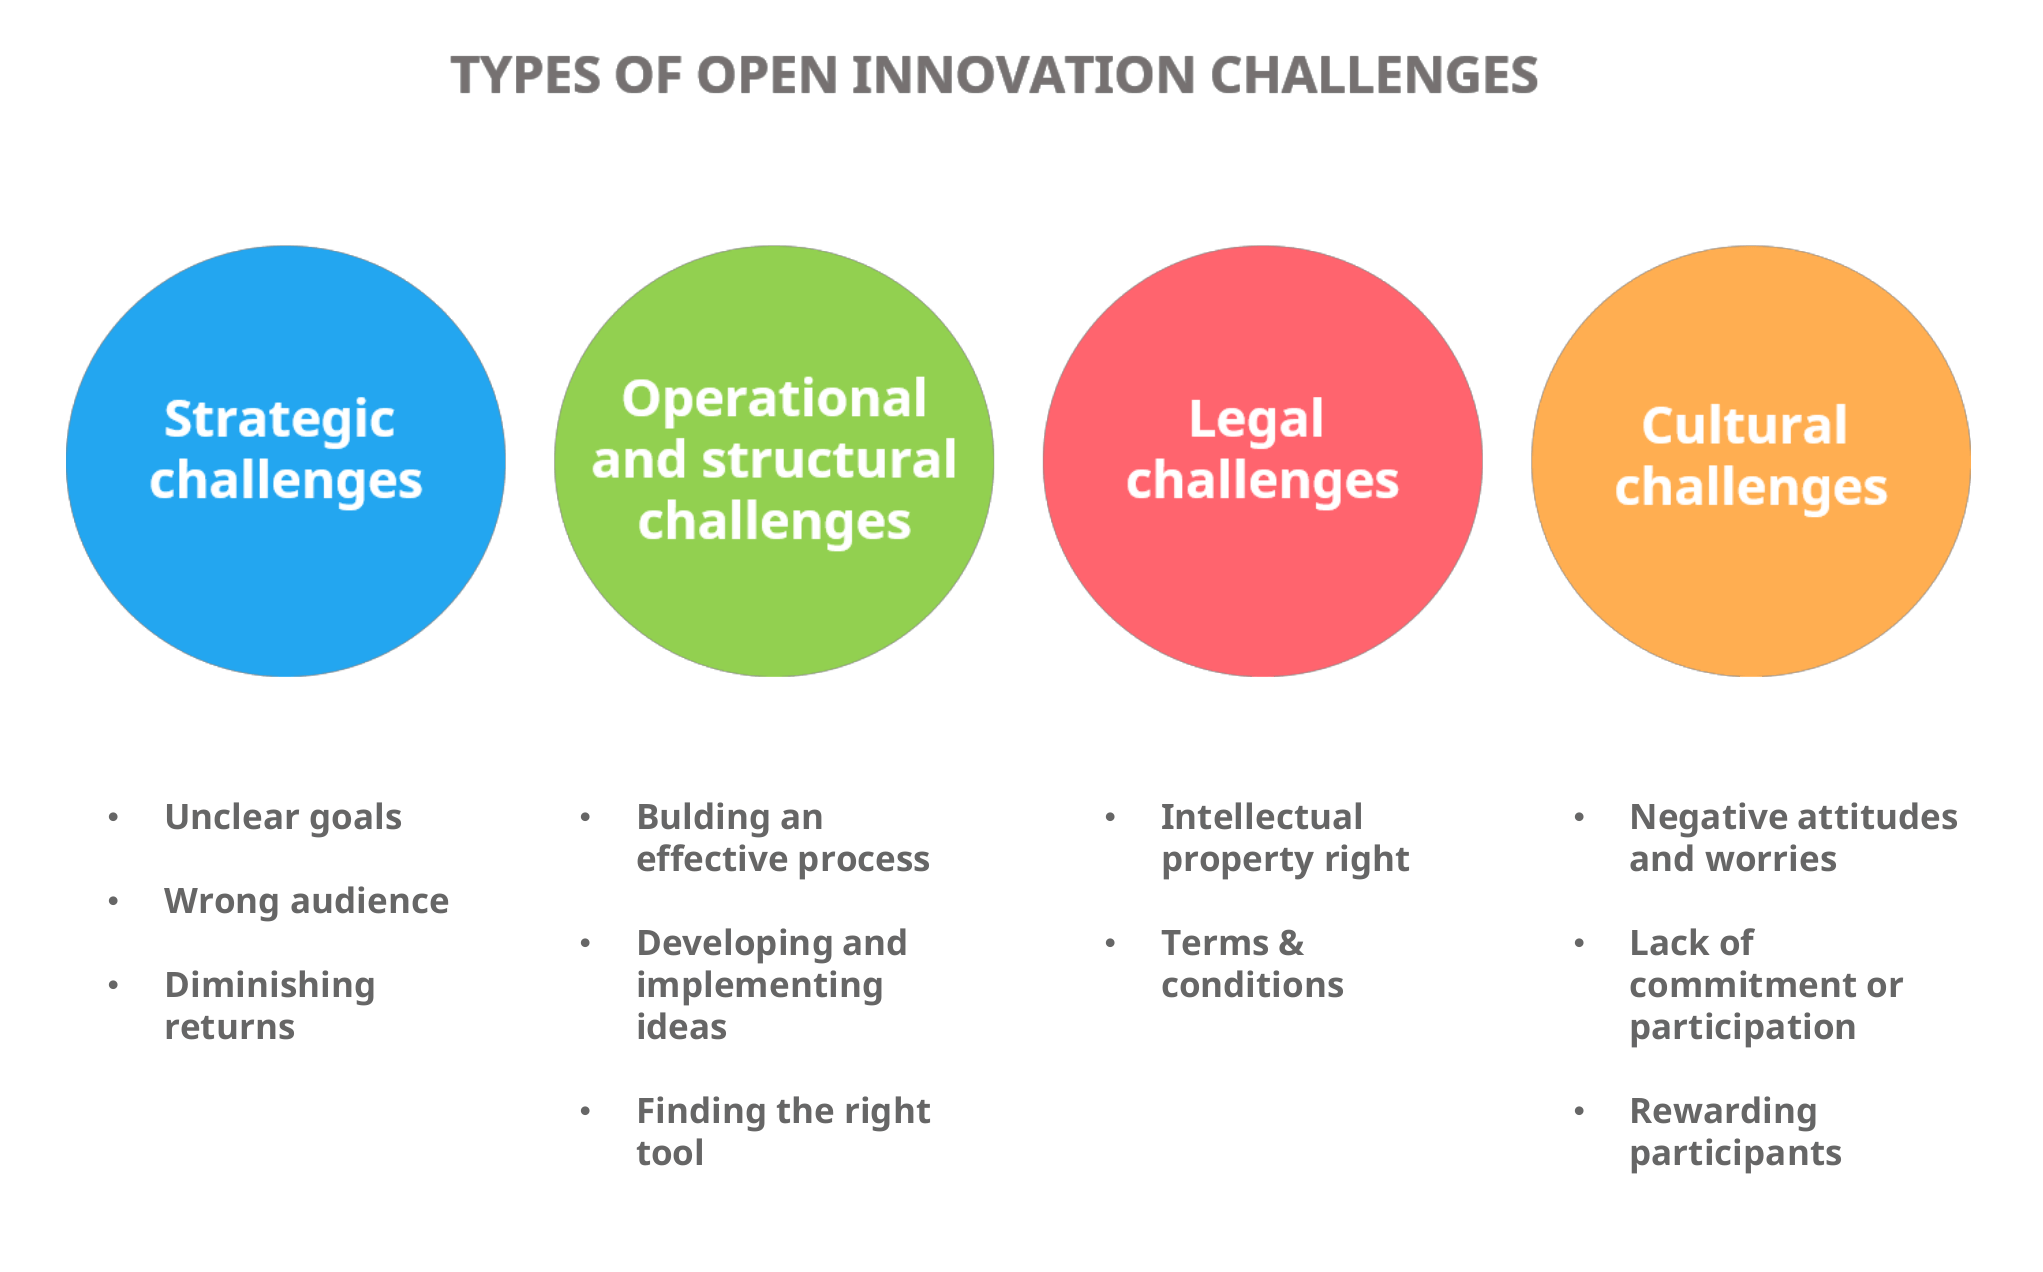 Open innovation challenges